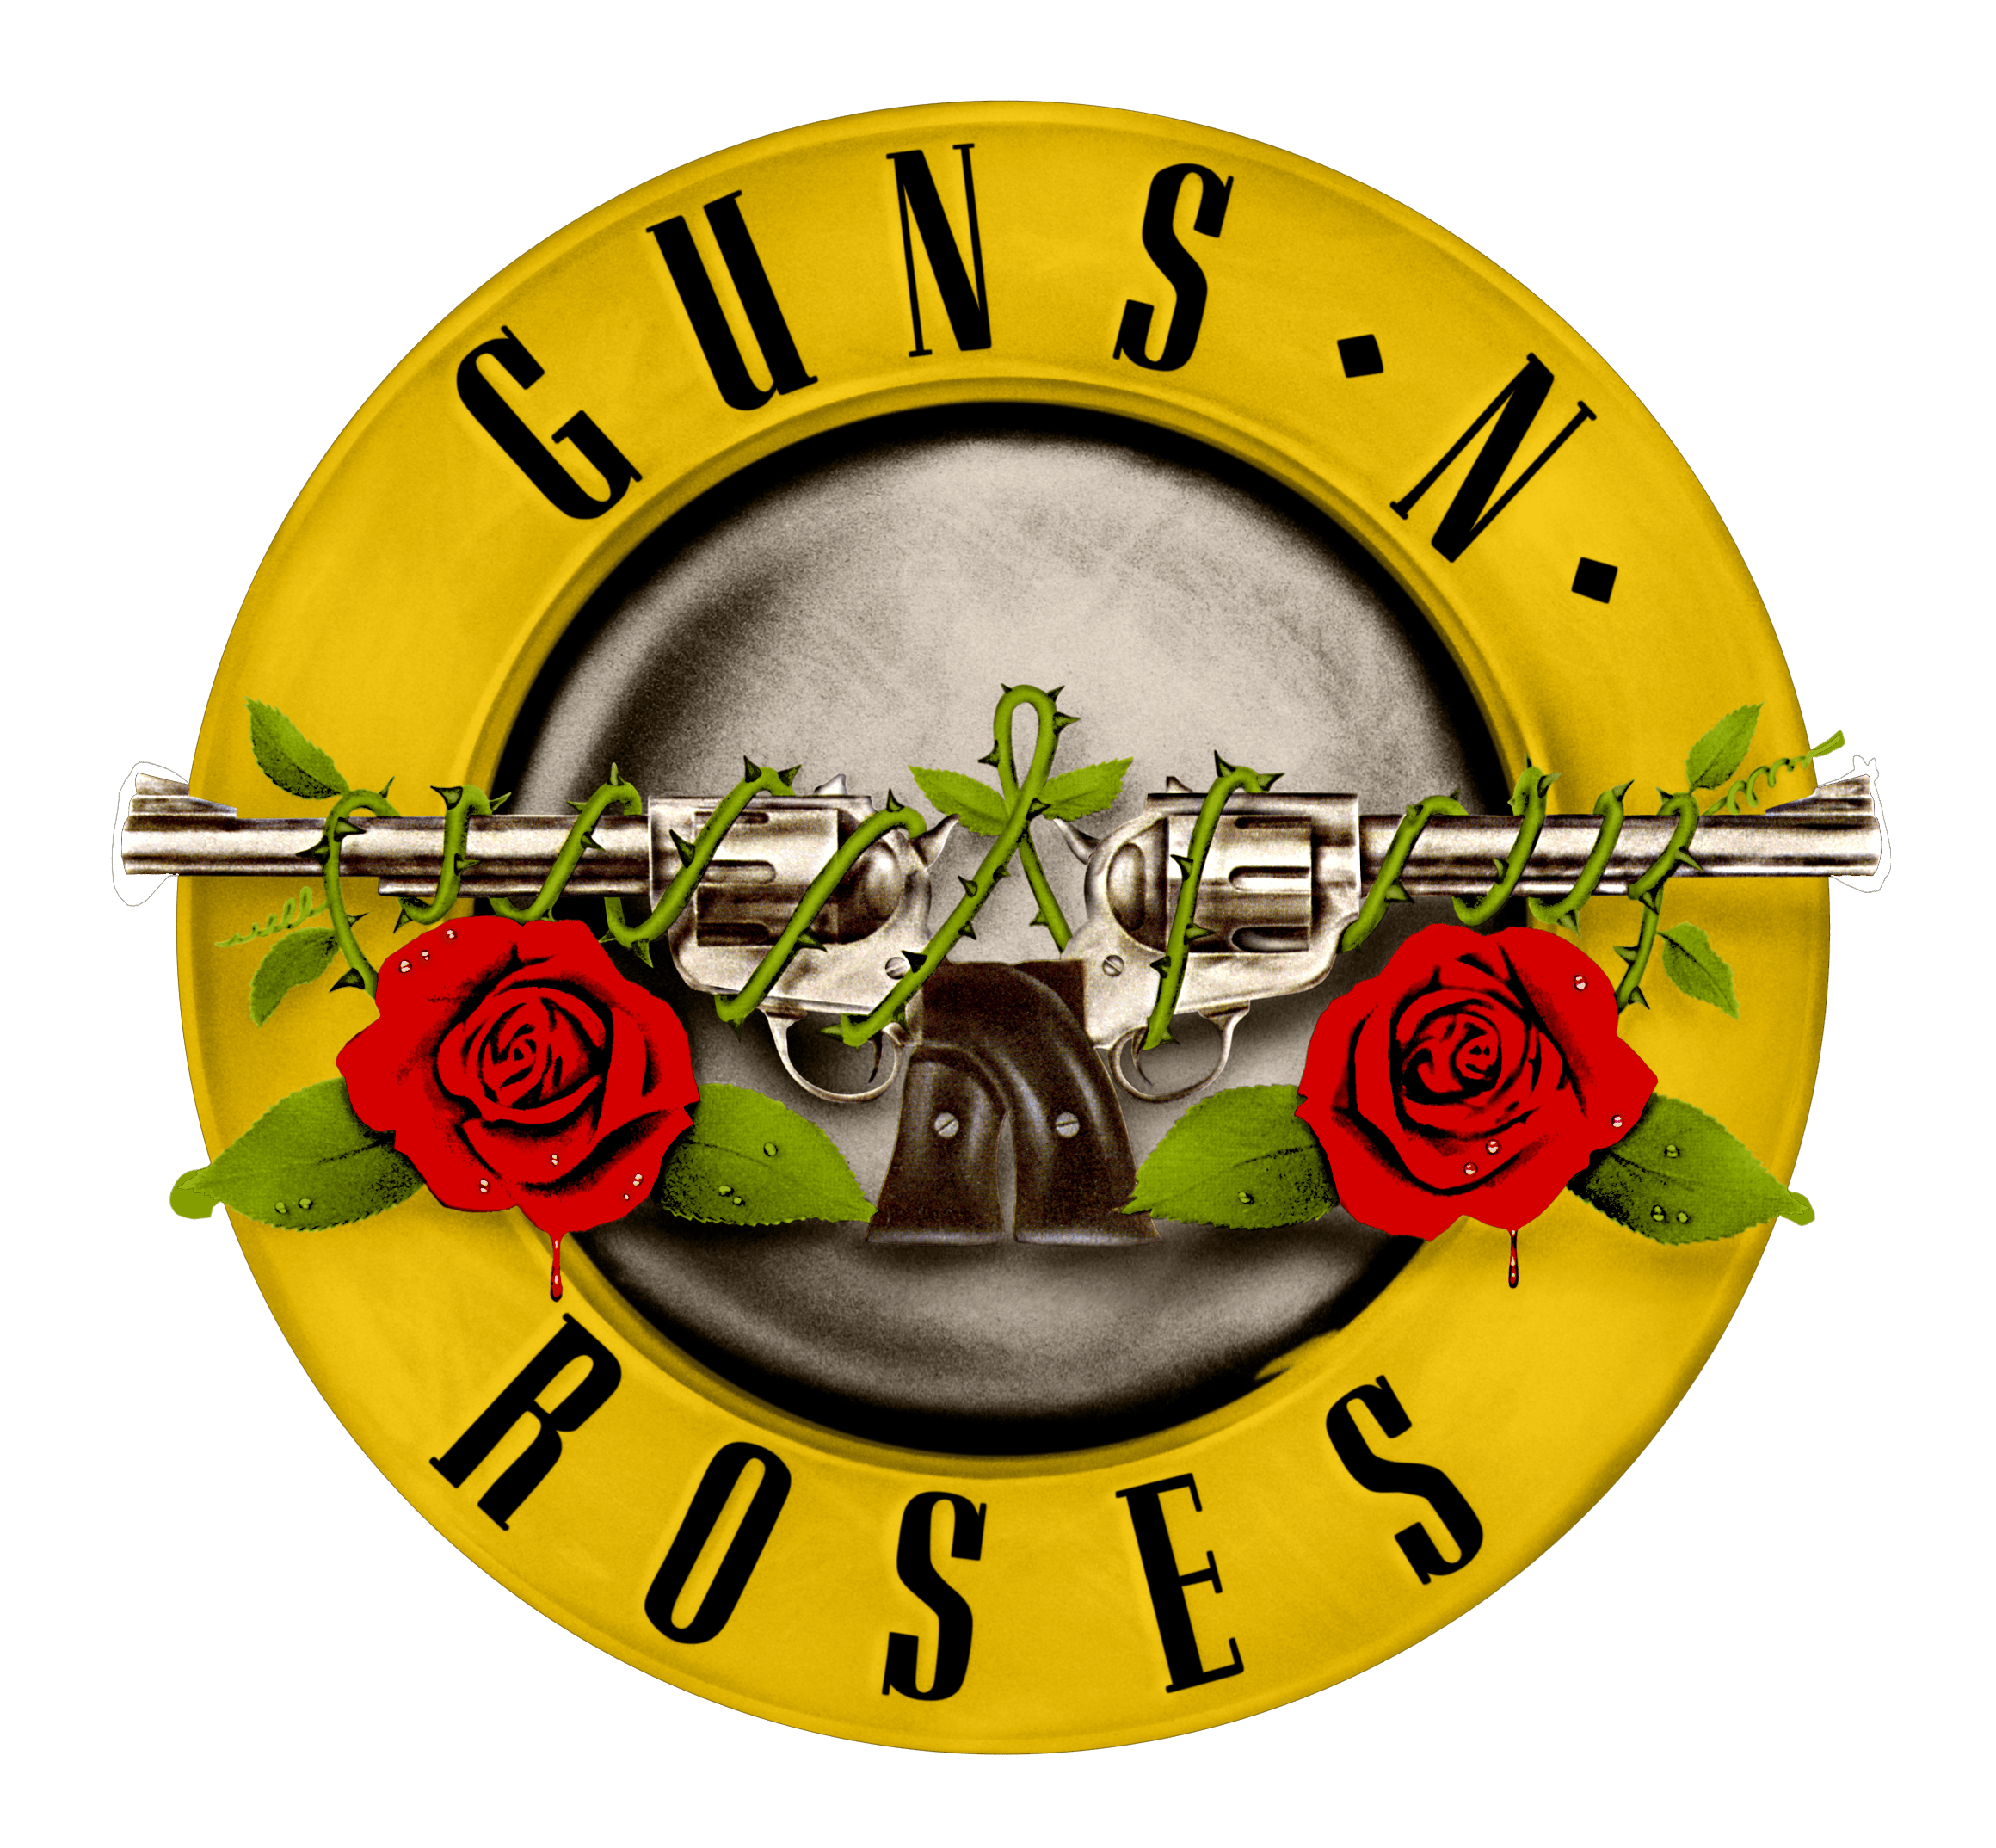 Top Gun Wallpaper Hd Guns N Roses Logo Images